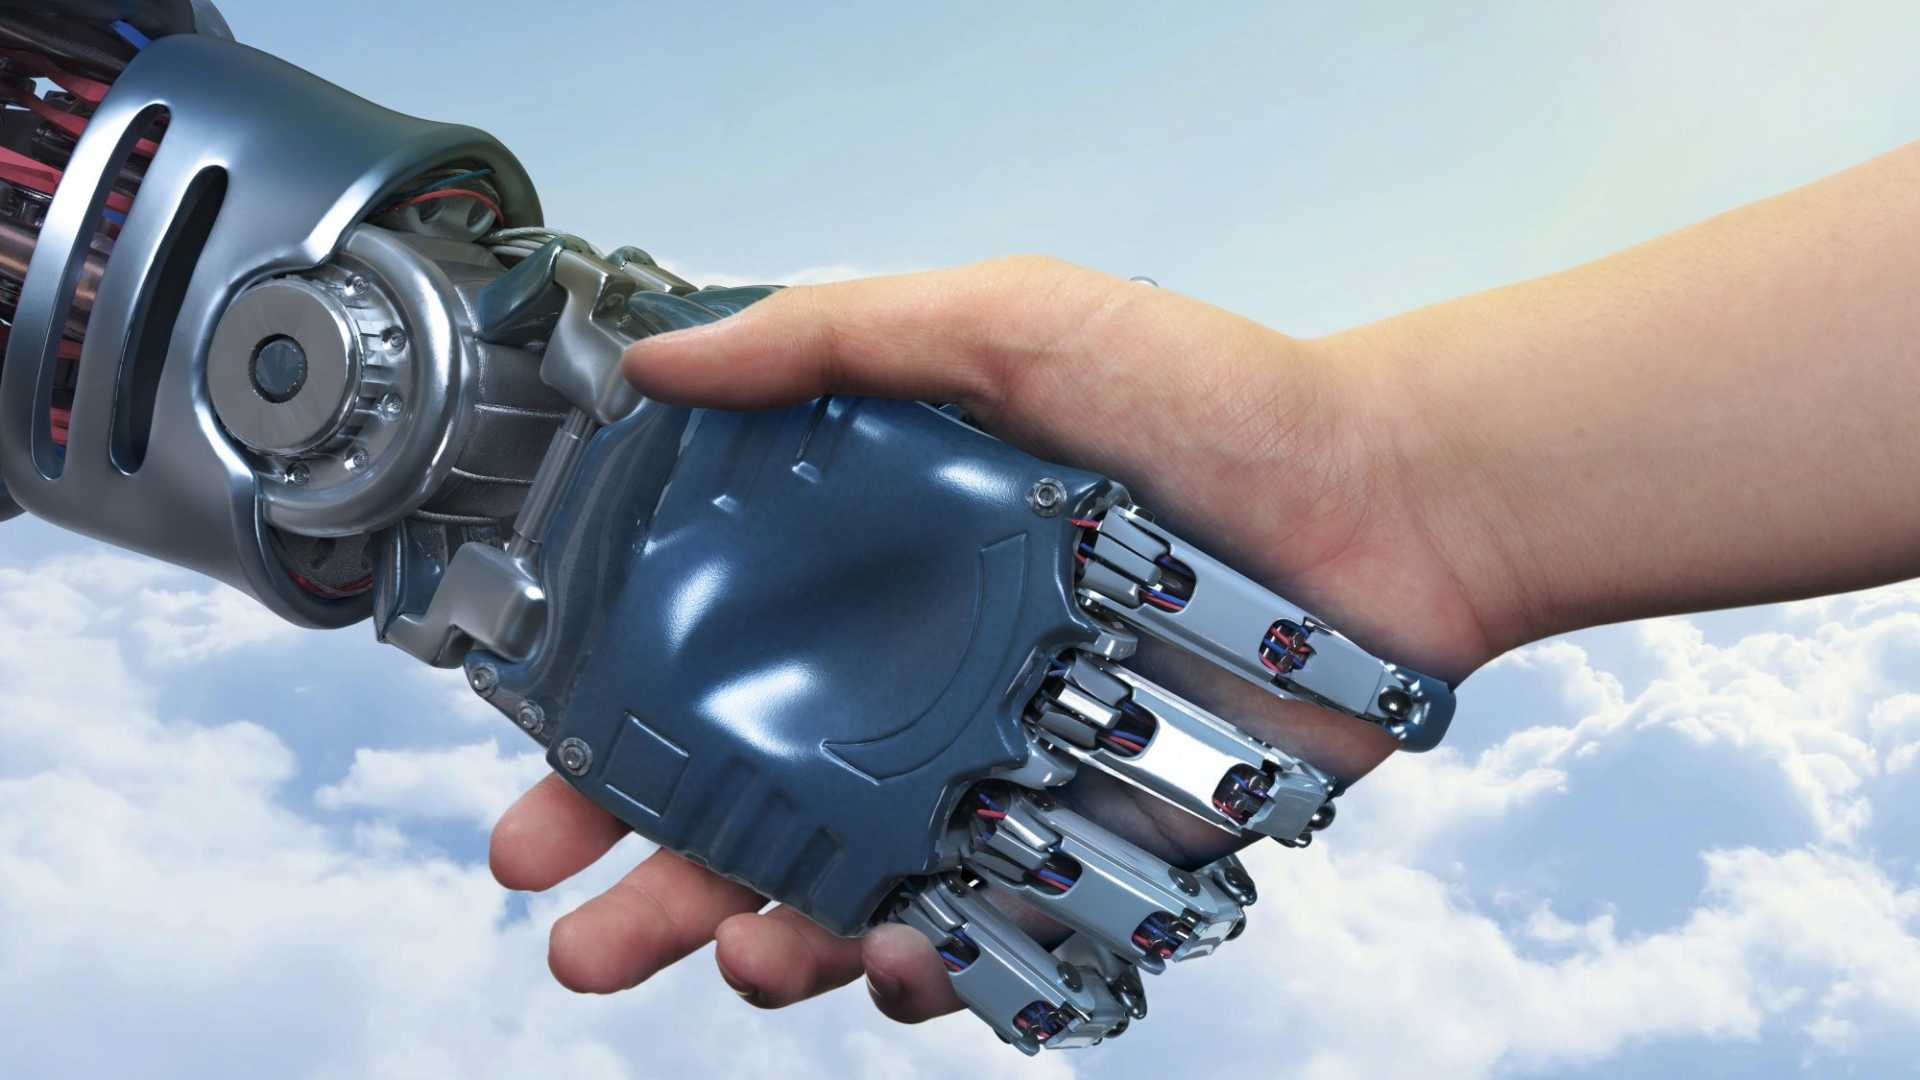 How to Create Meaningful Customer Relationships in the Age of Artificial Intelligence